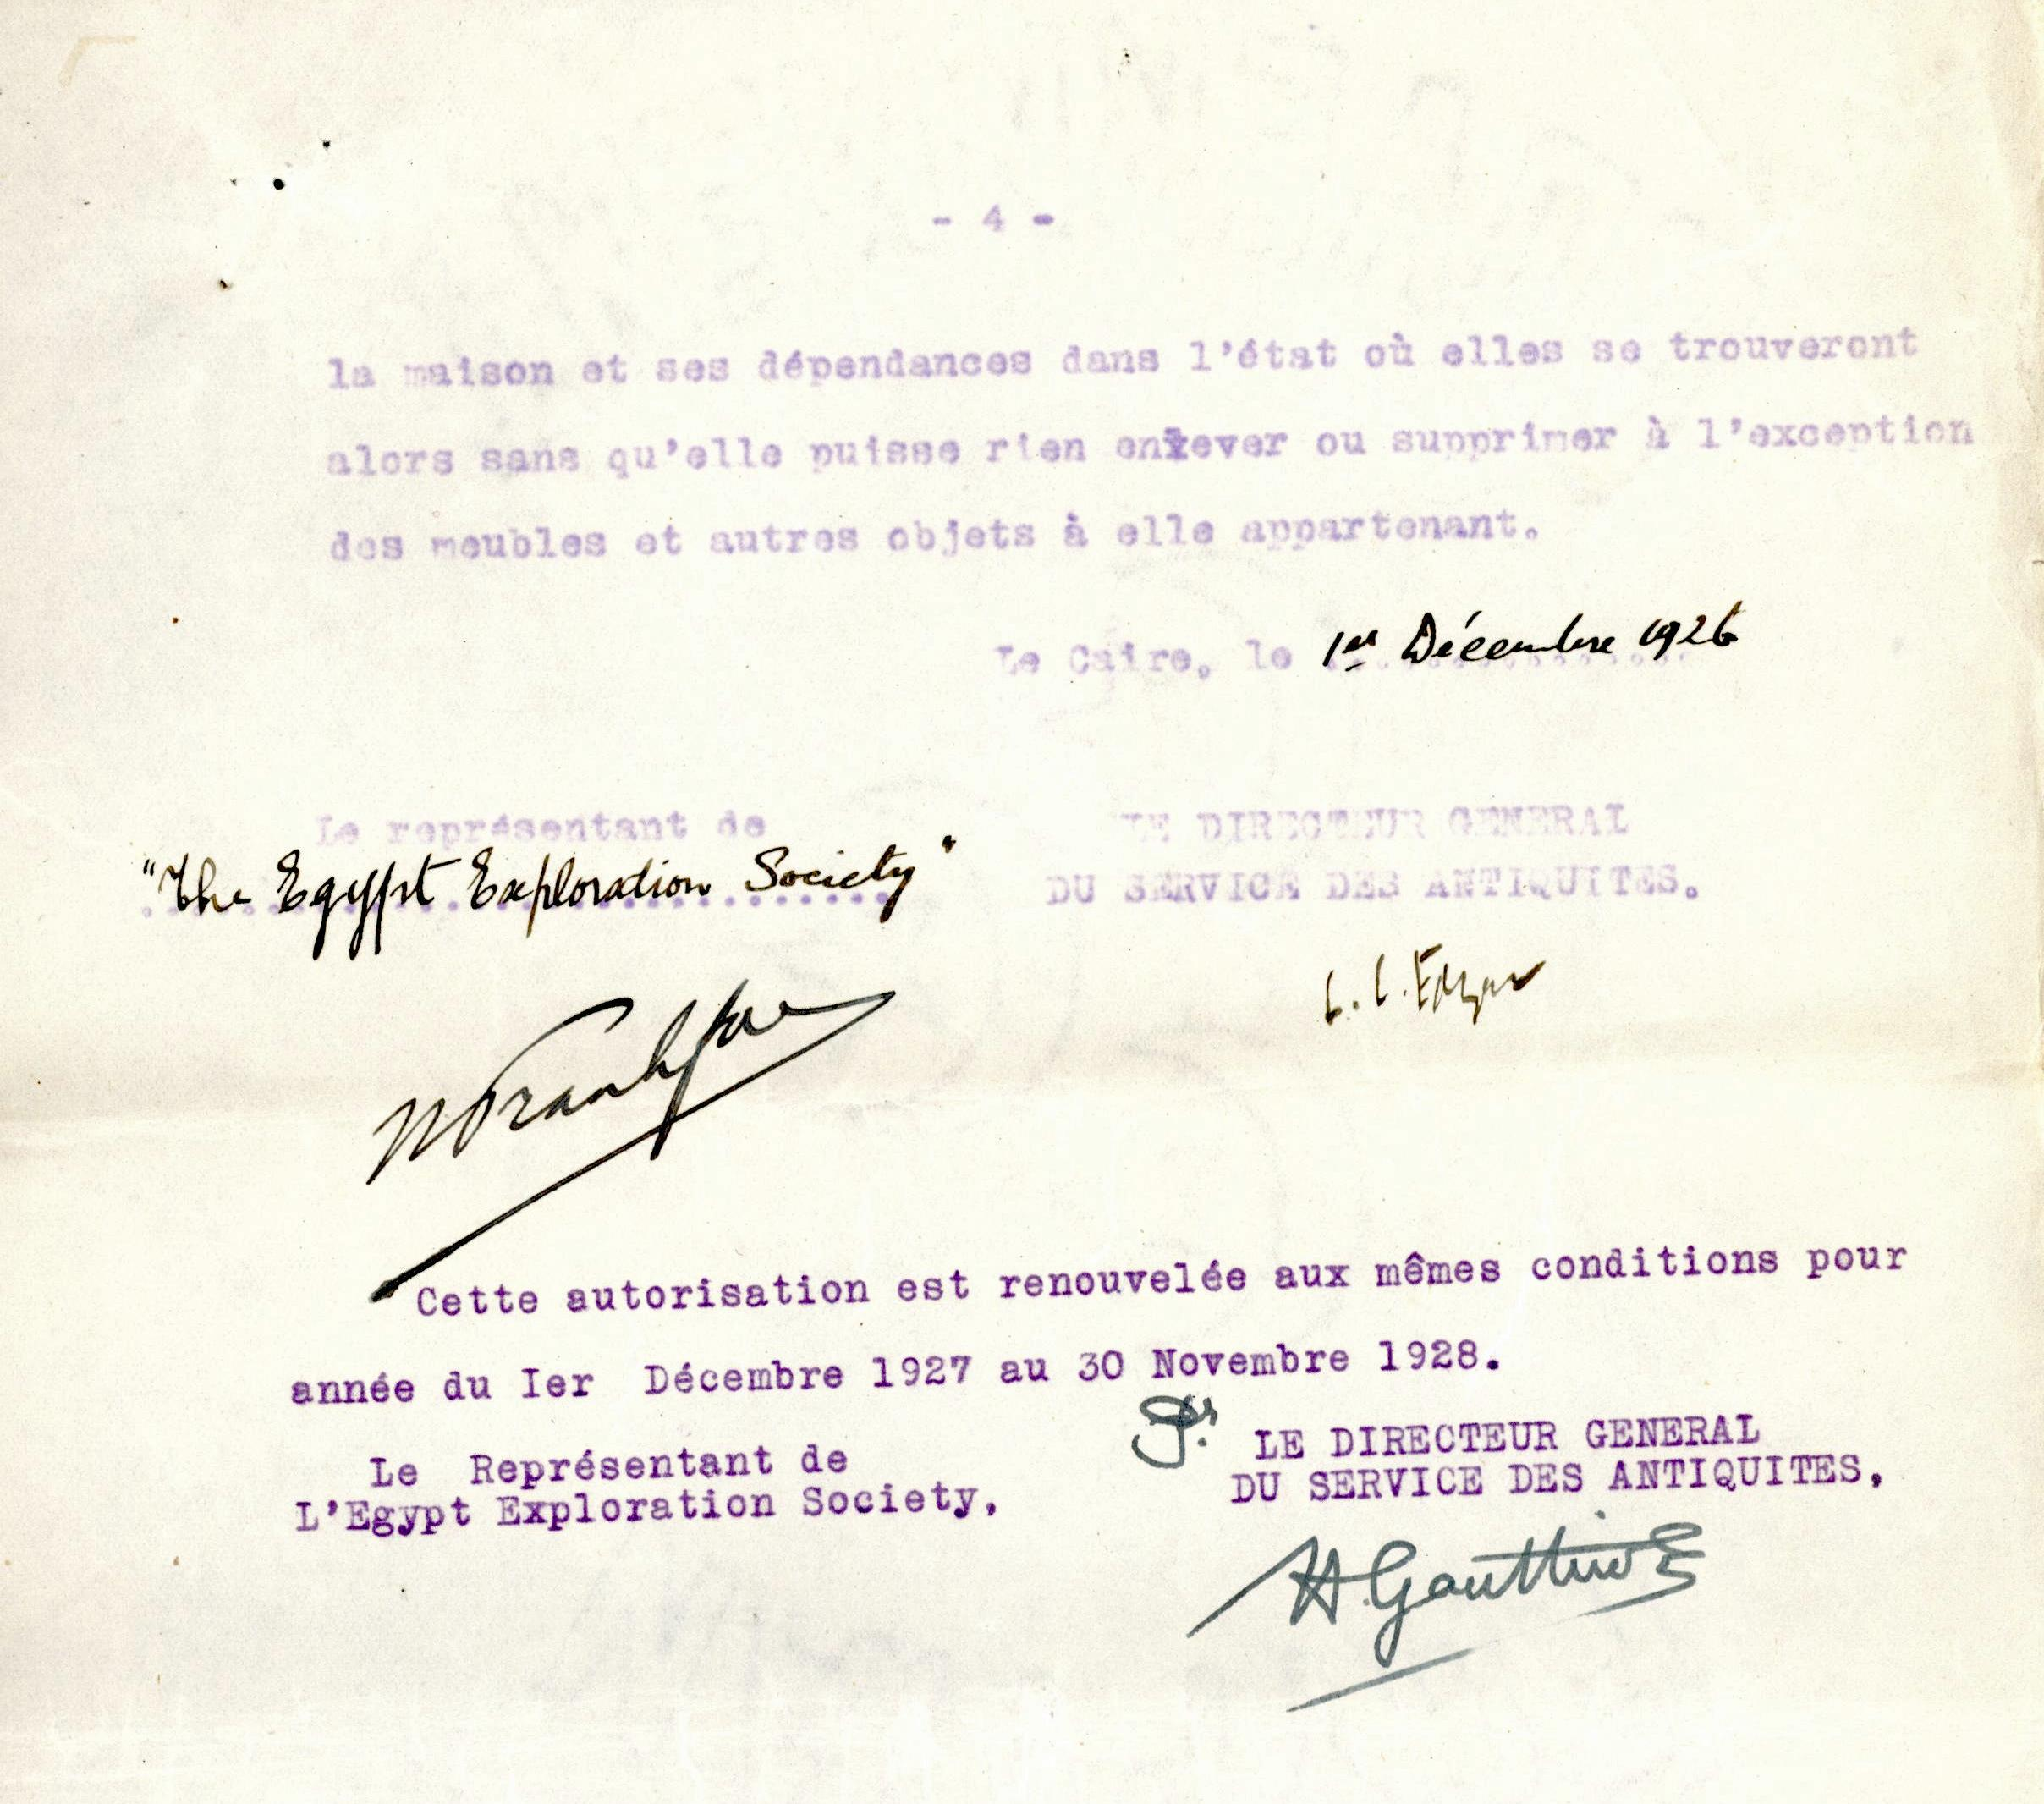 1926-39 correspondence with Antiquities Service DIST.50.09d